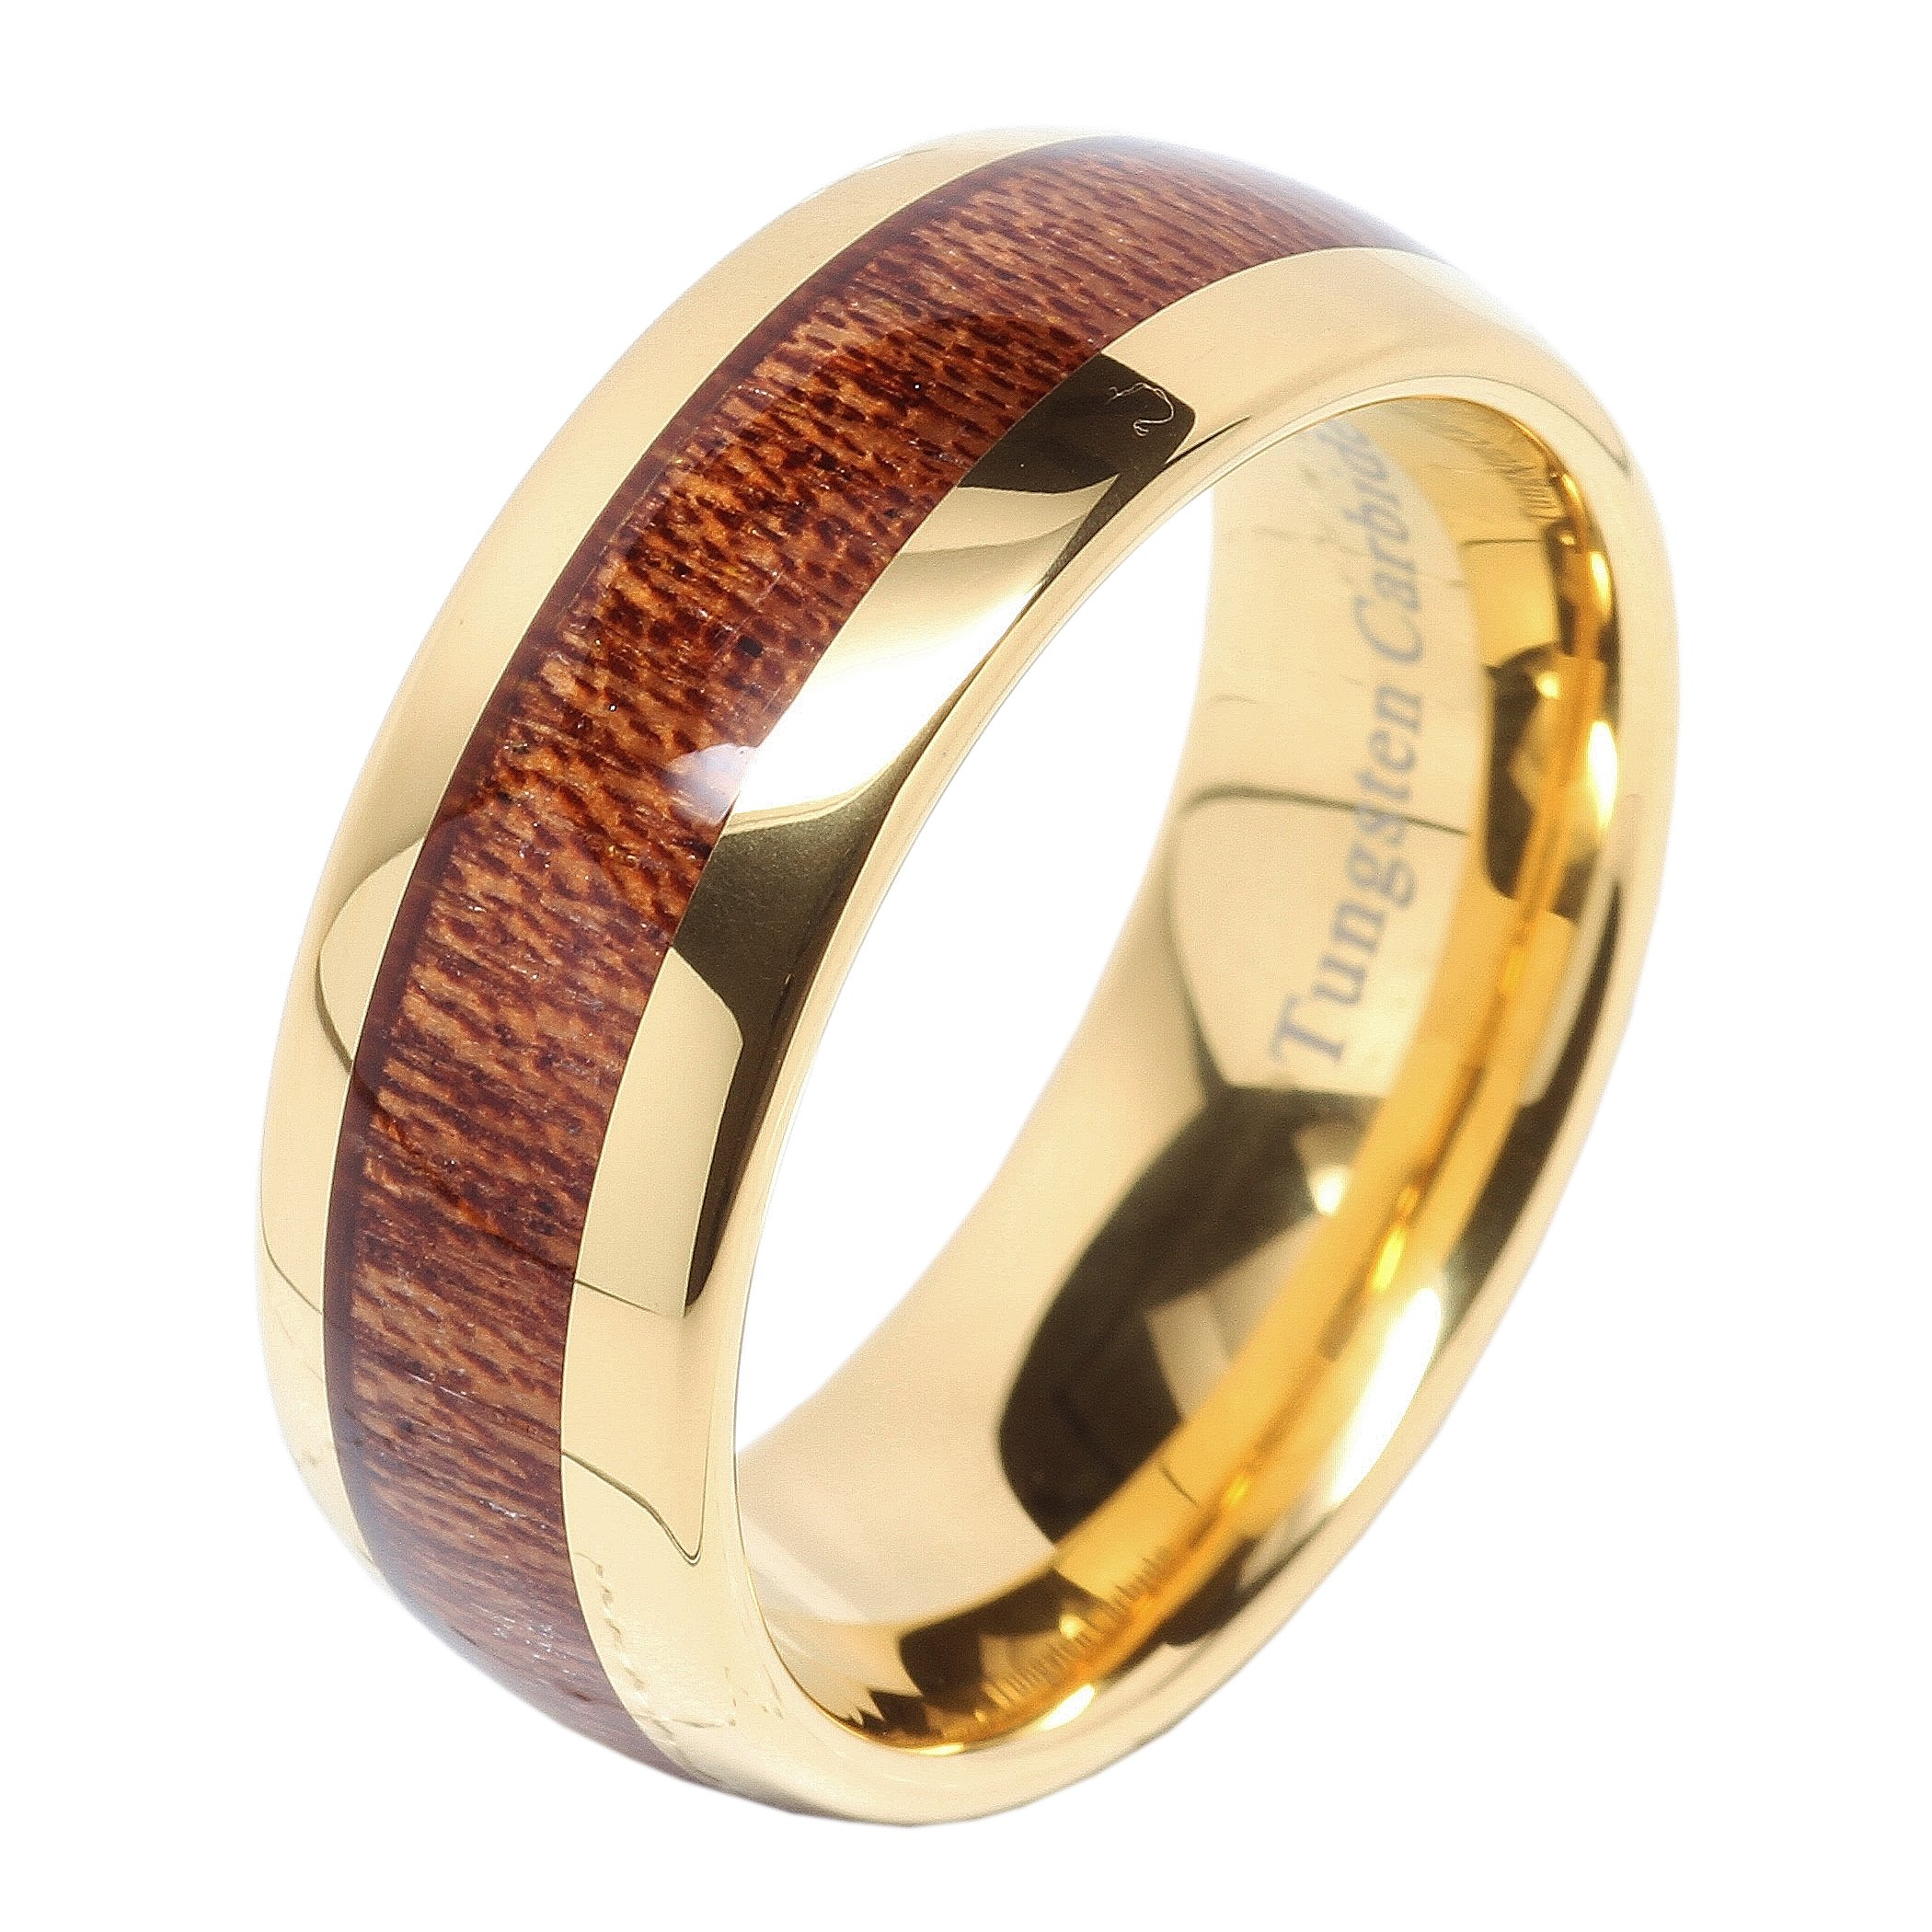 100S JEWELRY Mens Wedding Bands Tungsten Rings Koa Wood Inlay 14k Gold Plated Size 6-16 (9.5)